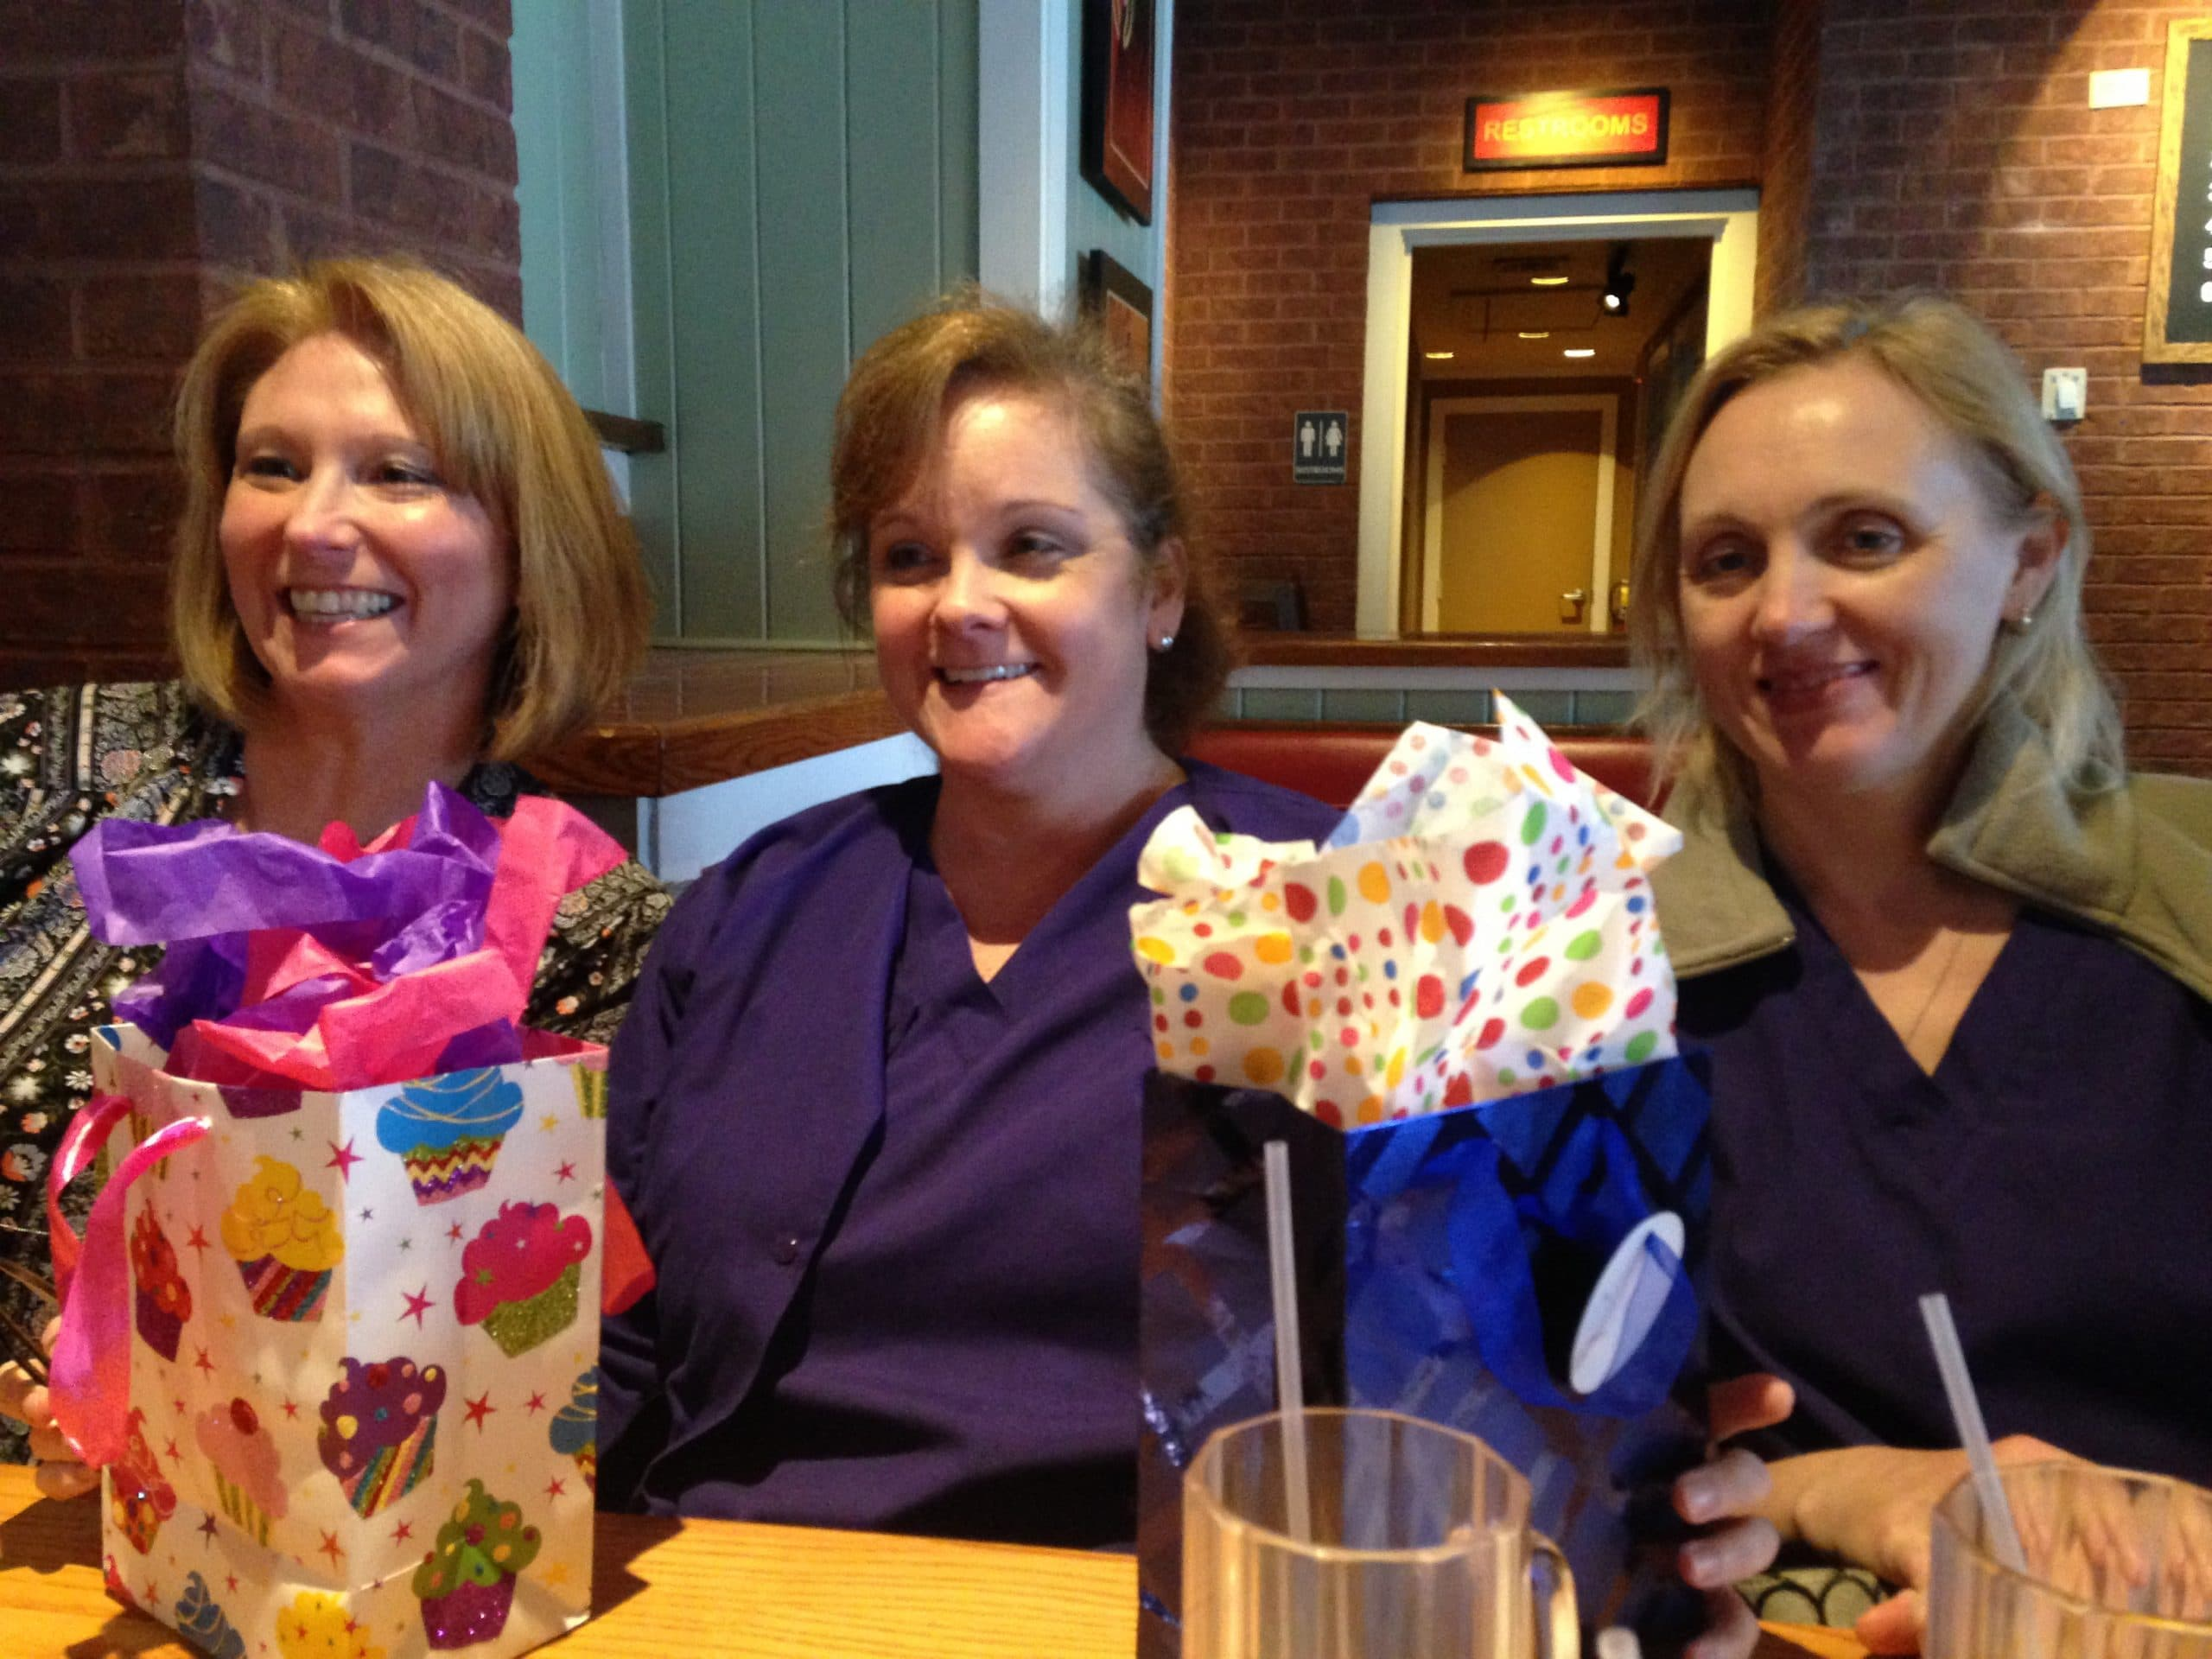 We Had A Wonderful Time Celebrating Staceys Birthday Today At The Chilis Near Home Depot On Marietta Highway